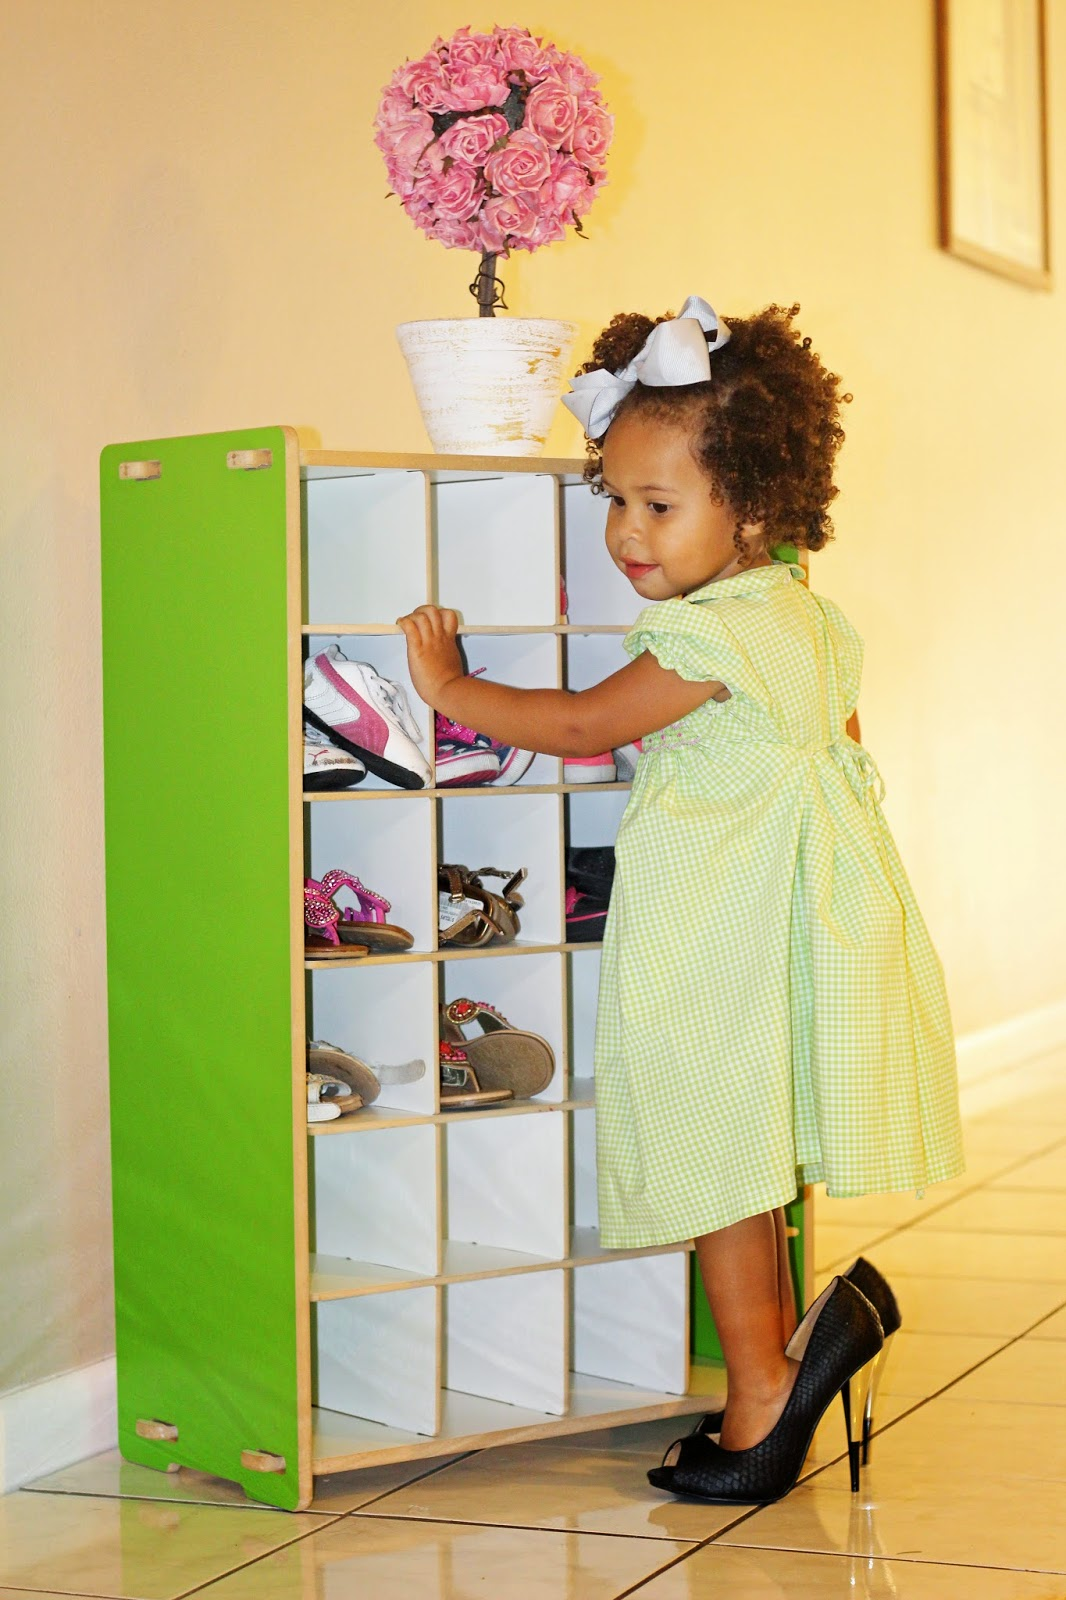 Sprout Kids Carries A Wide Variety Of High Quality Childrenu0027s Furniture And  Storage Options.